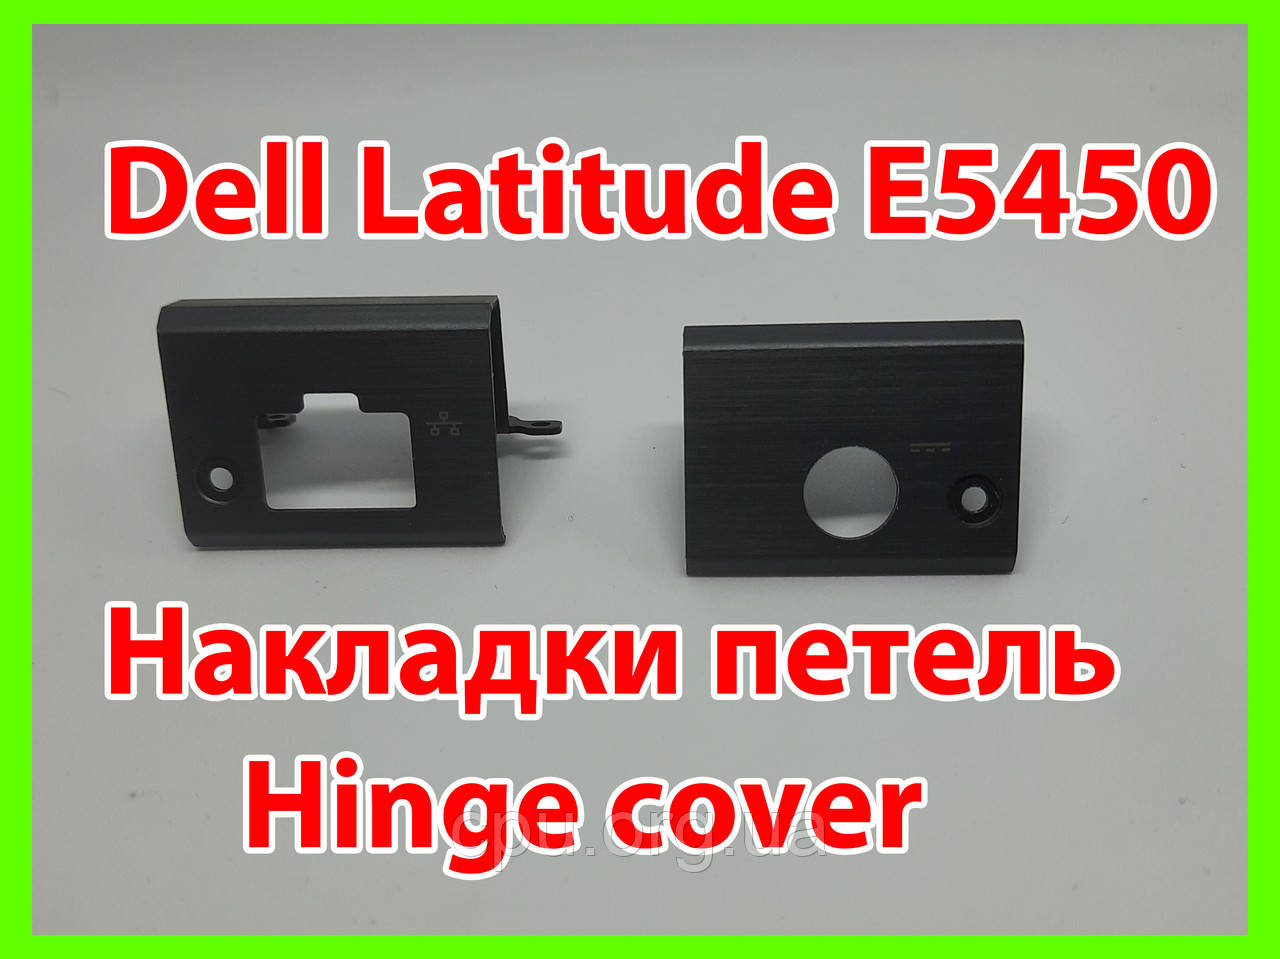 Накладки петель Dell Latitude E5450 hinge cover